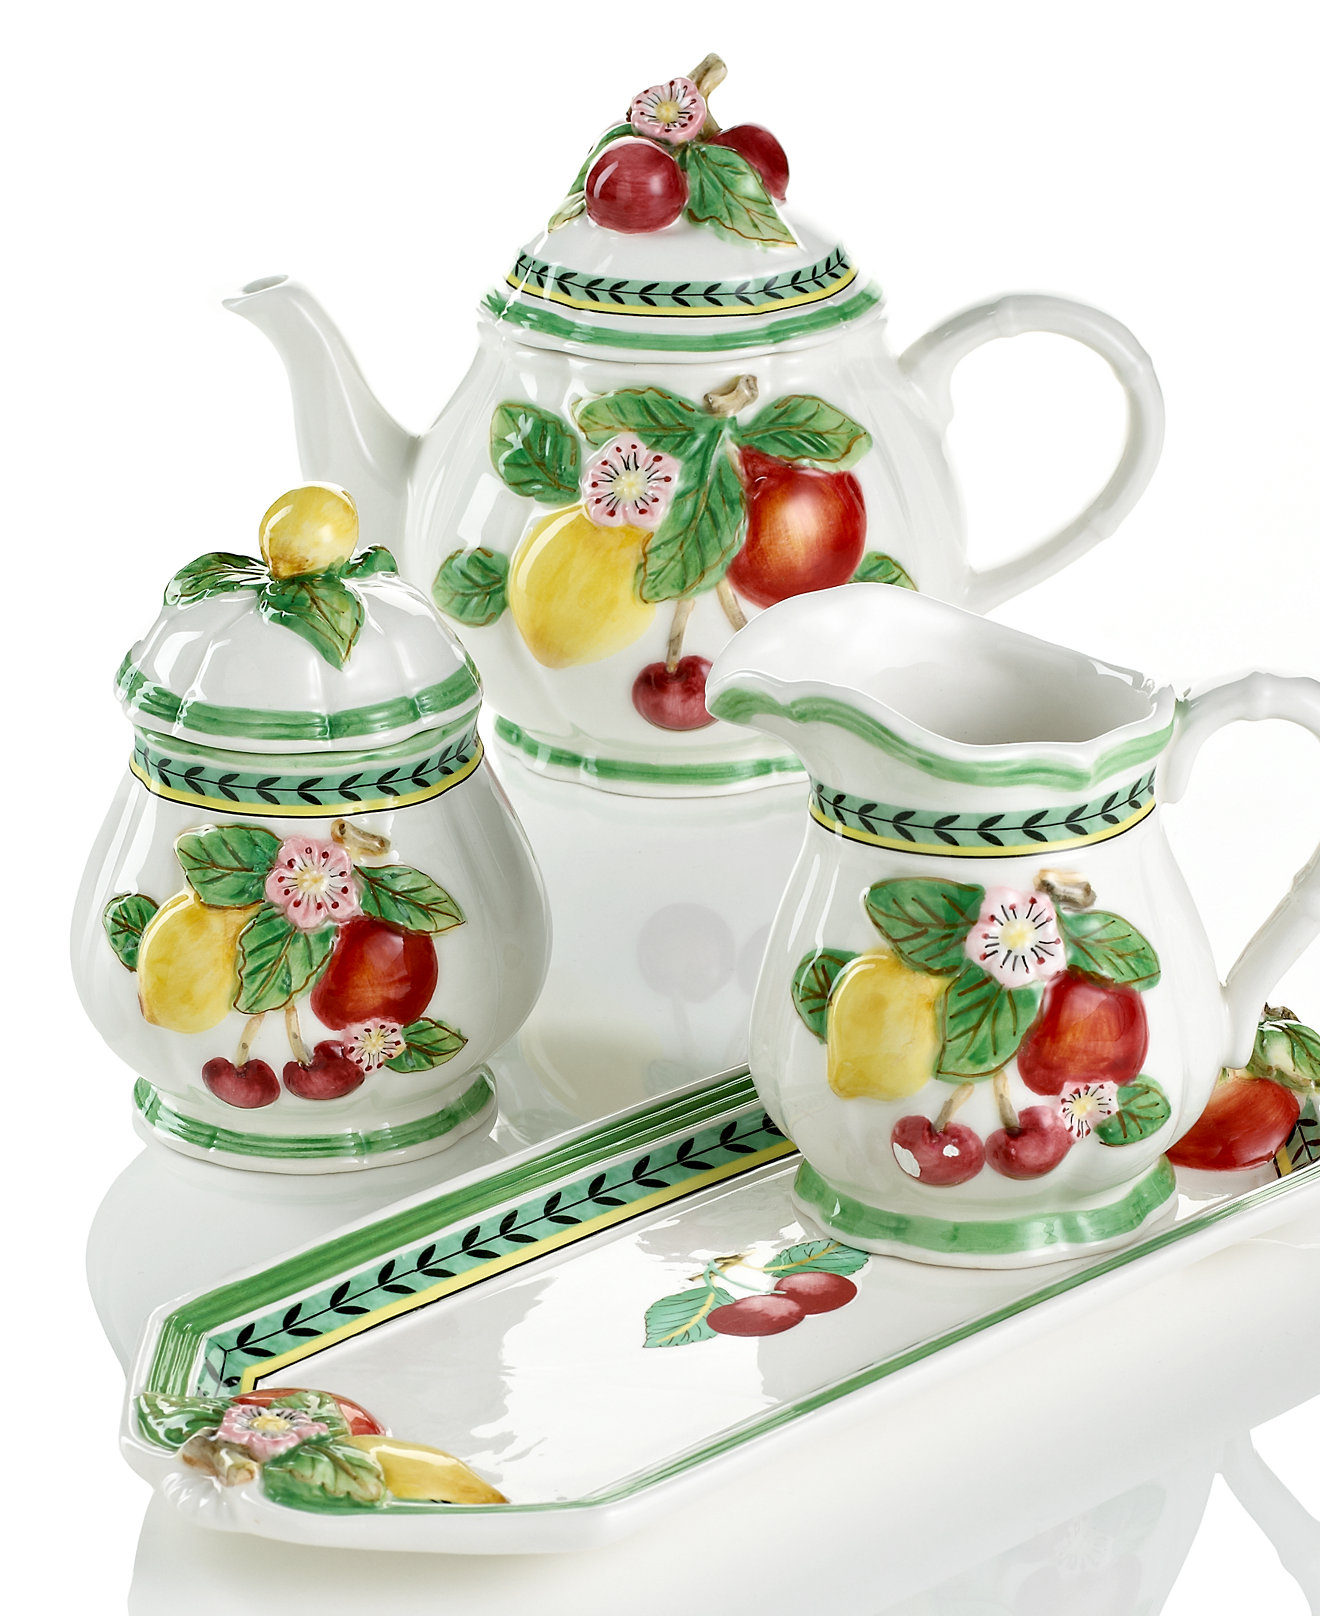 Villeroy and boch french garden garden ftempo - Villeroy and bosh ...